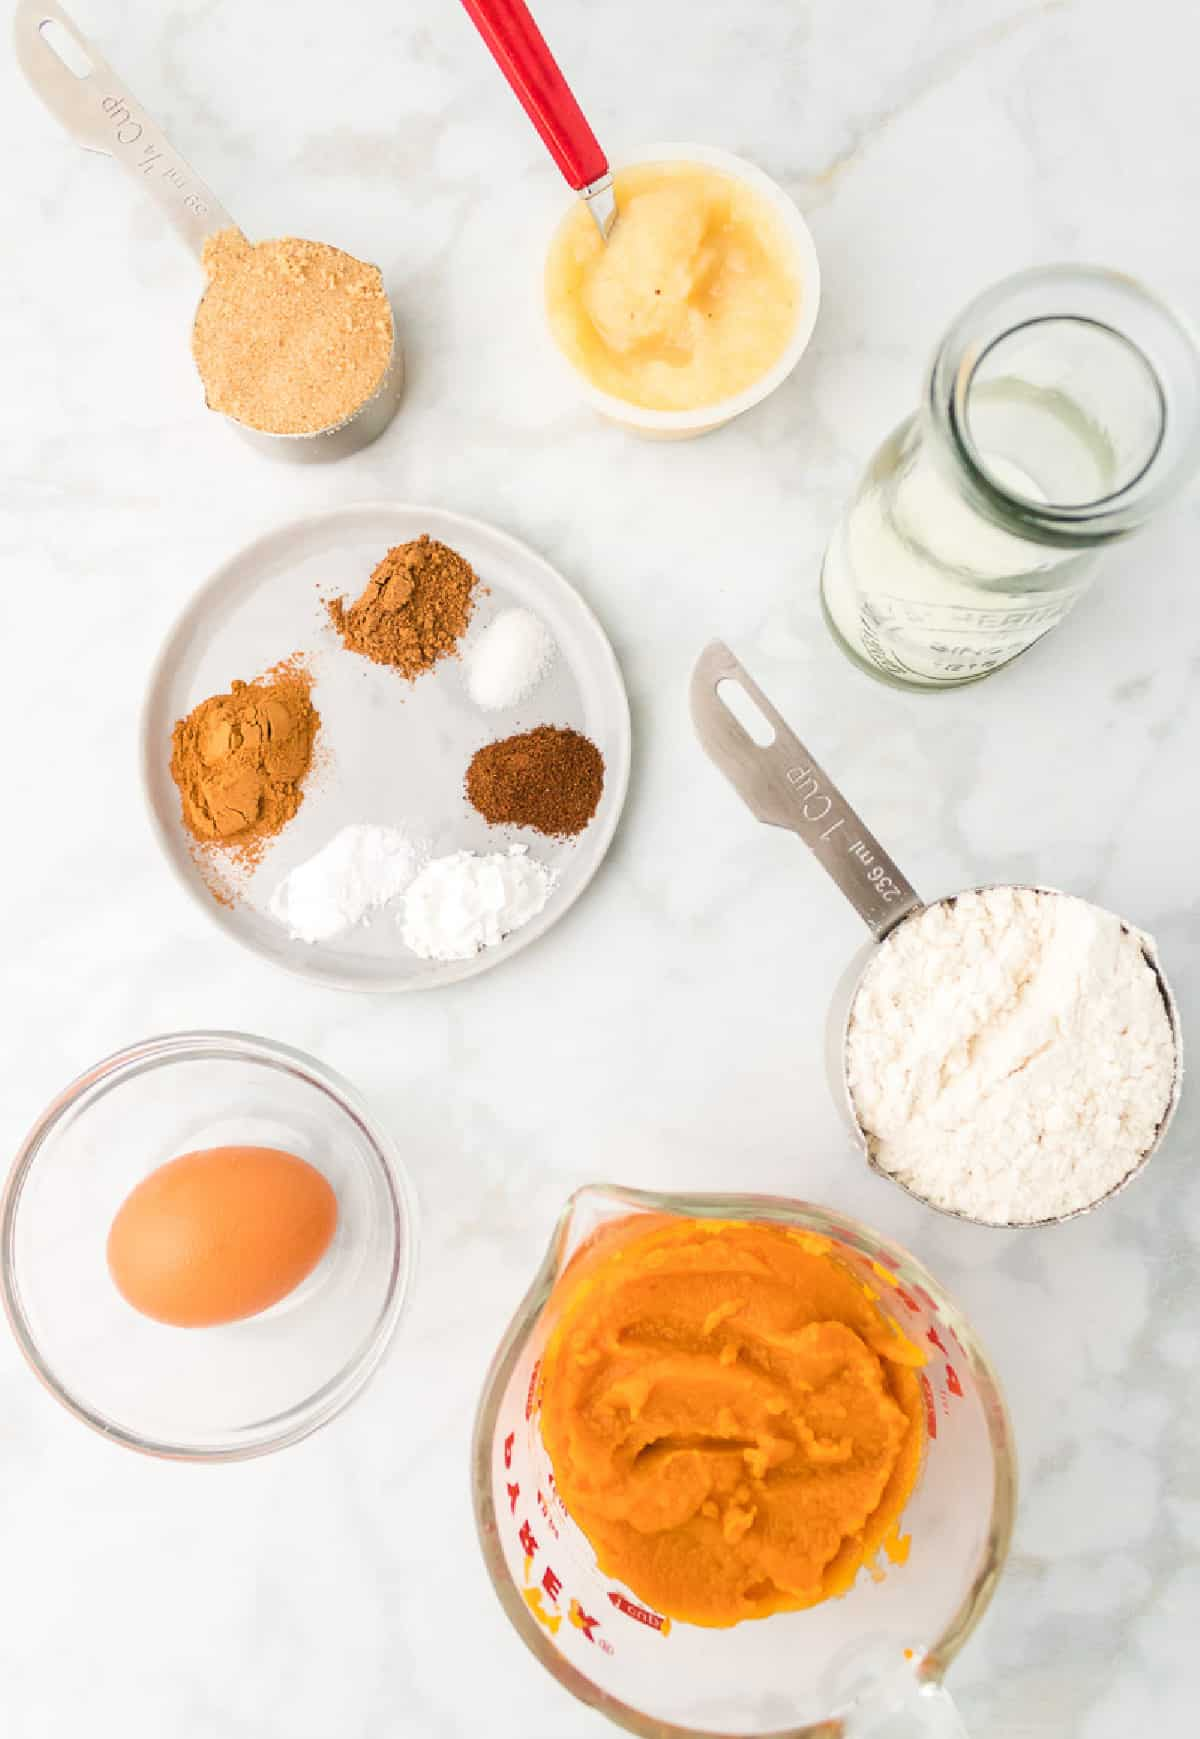 All the ingredients required to make pumpkin muffins.